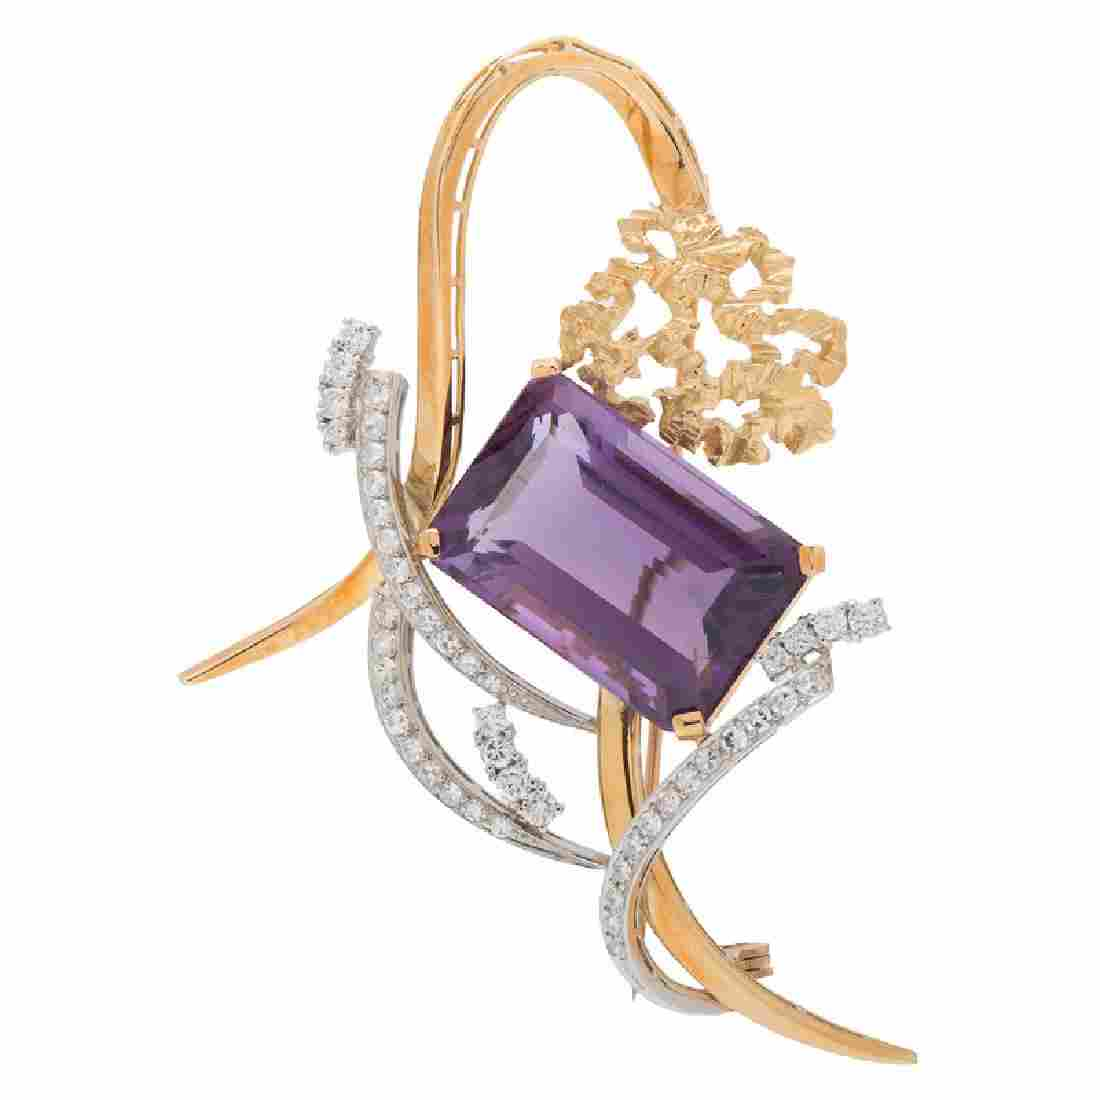 H. Stern Amethyst and Diamond Brooch in 18 Karat Yellow